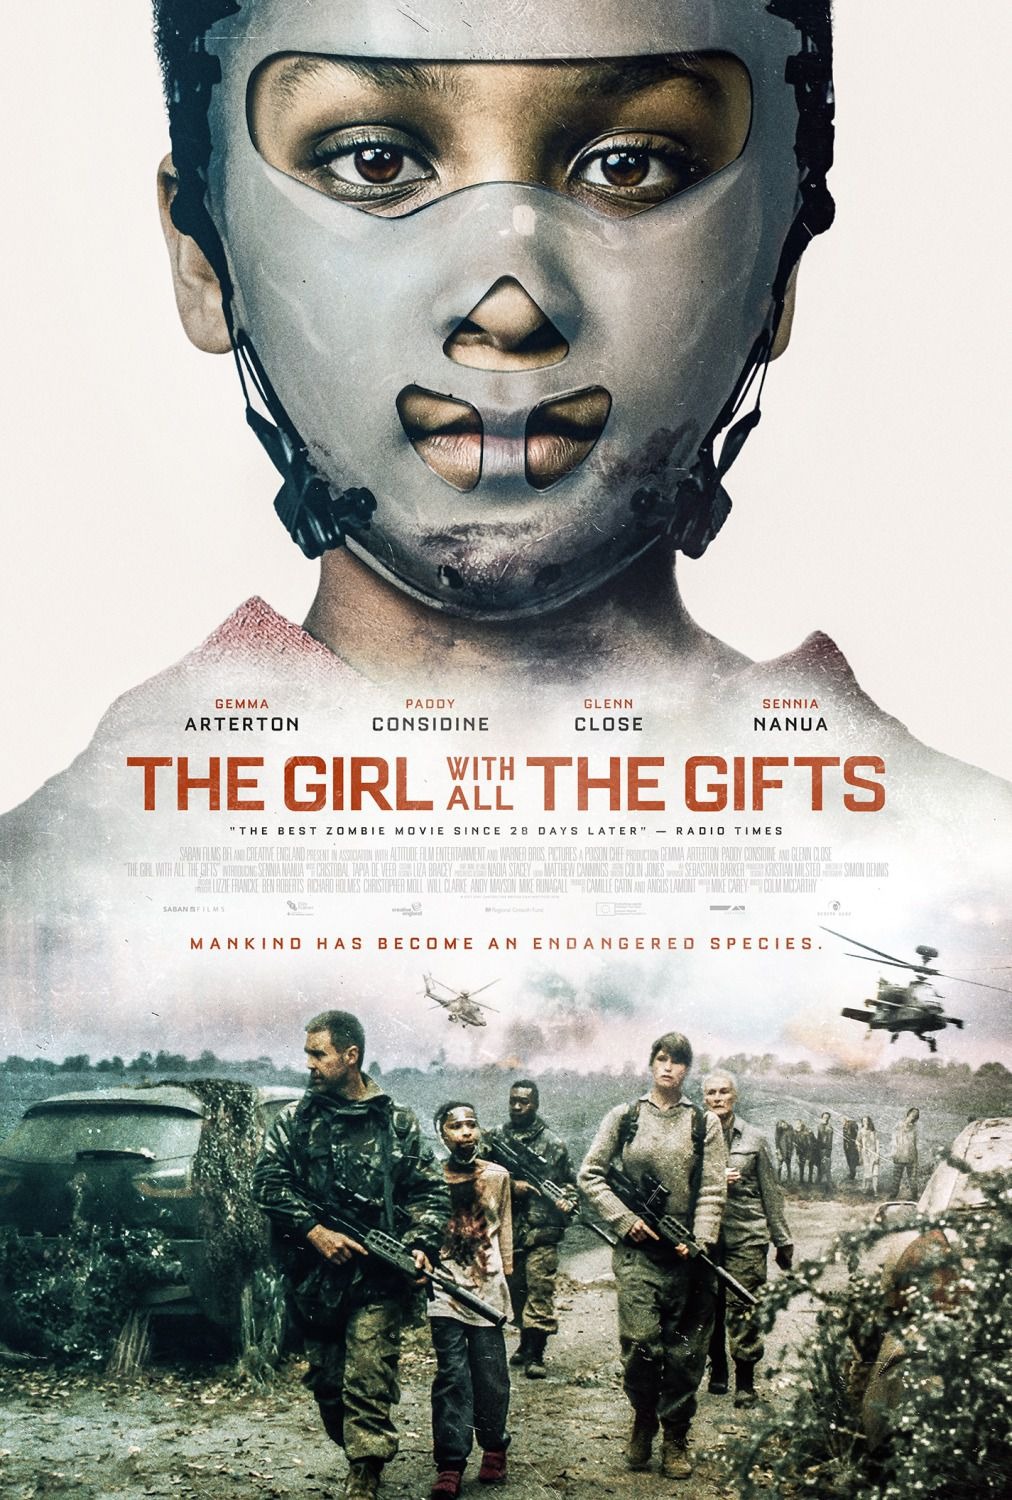 Girl with all the Gifts - poster - Gemma Arterton - Paddy Considine - Glenn Close - Sennia Nanua - base on the best selling novel by M.R. Carey